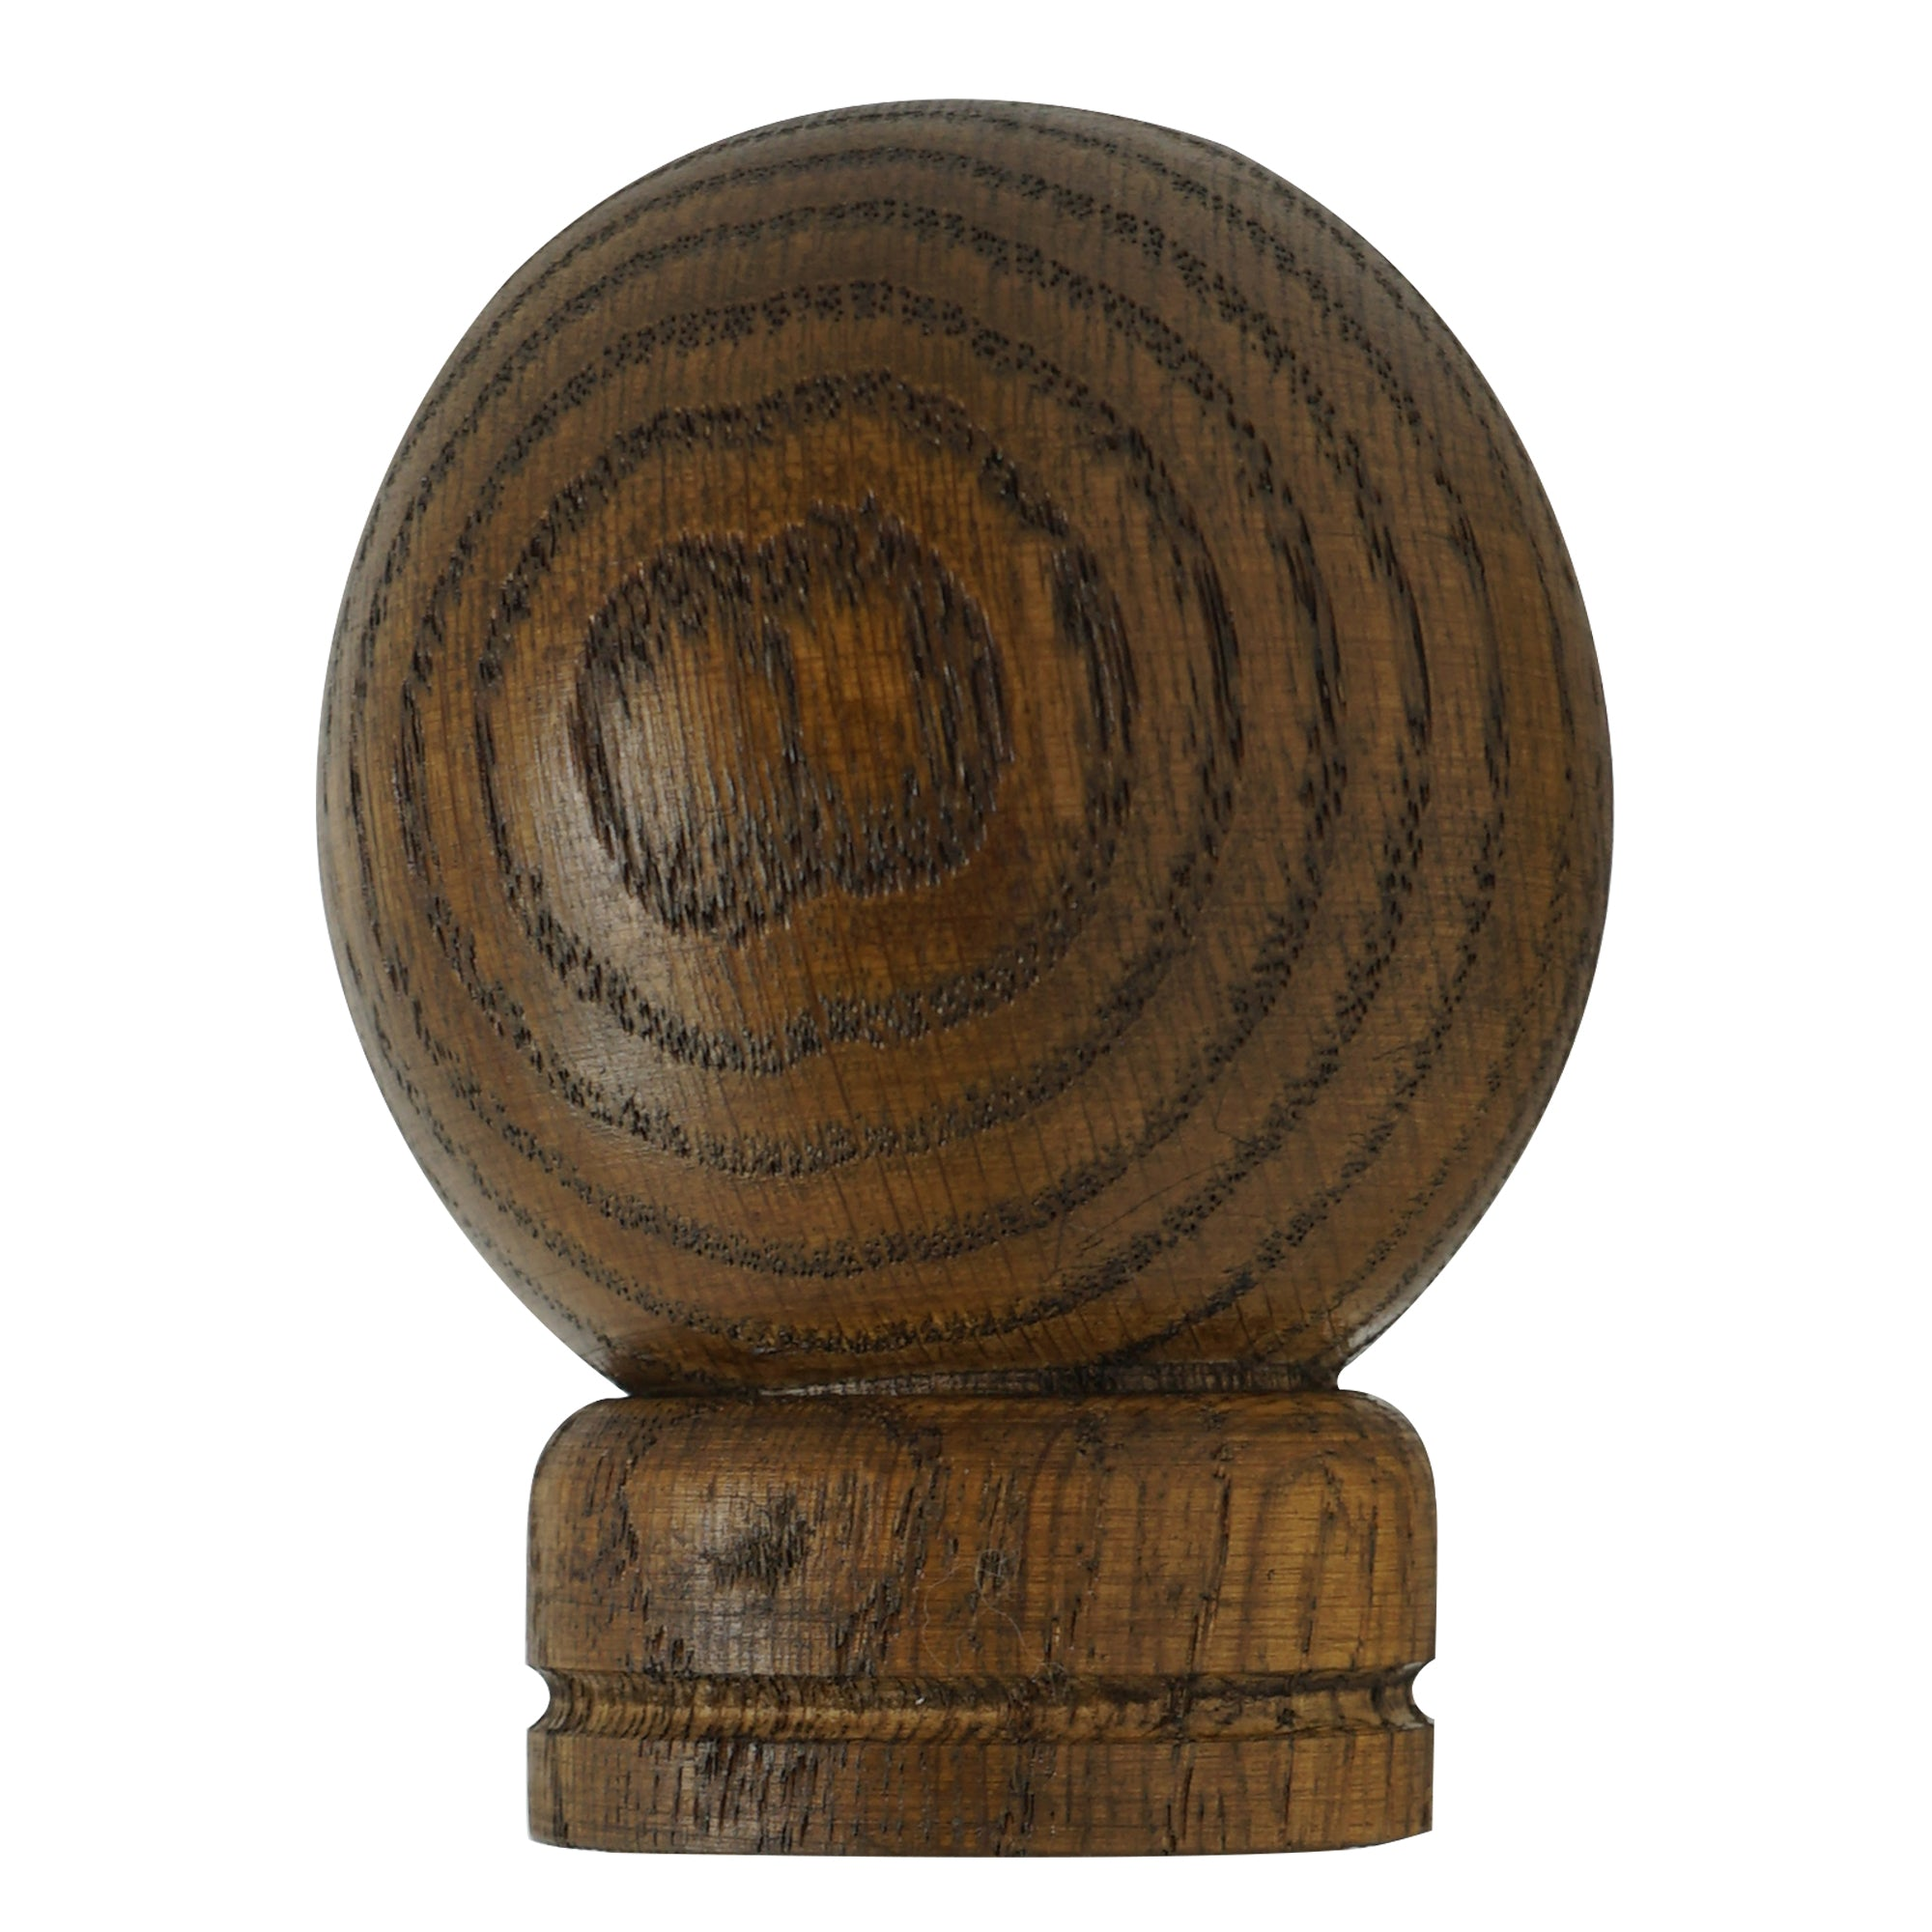 Wood Ball Finial - Cafe Finish